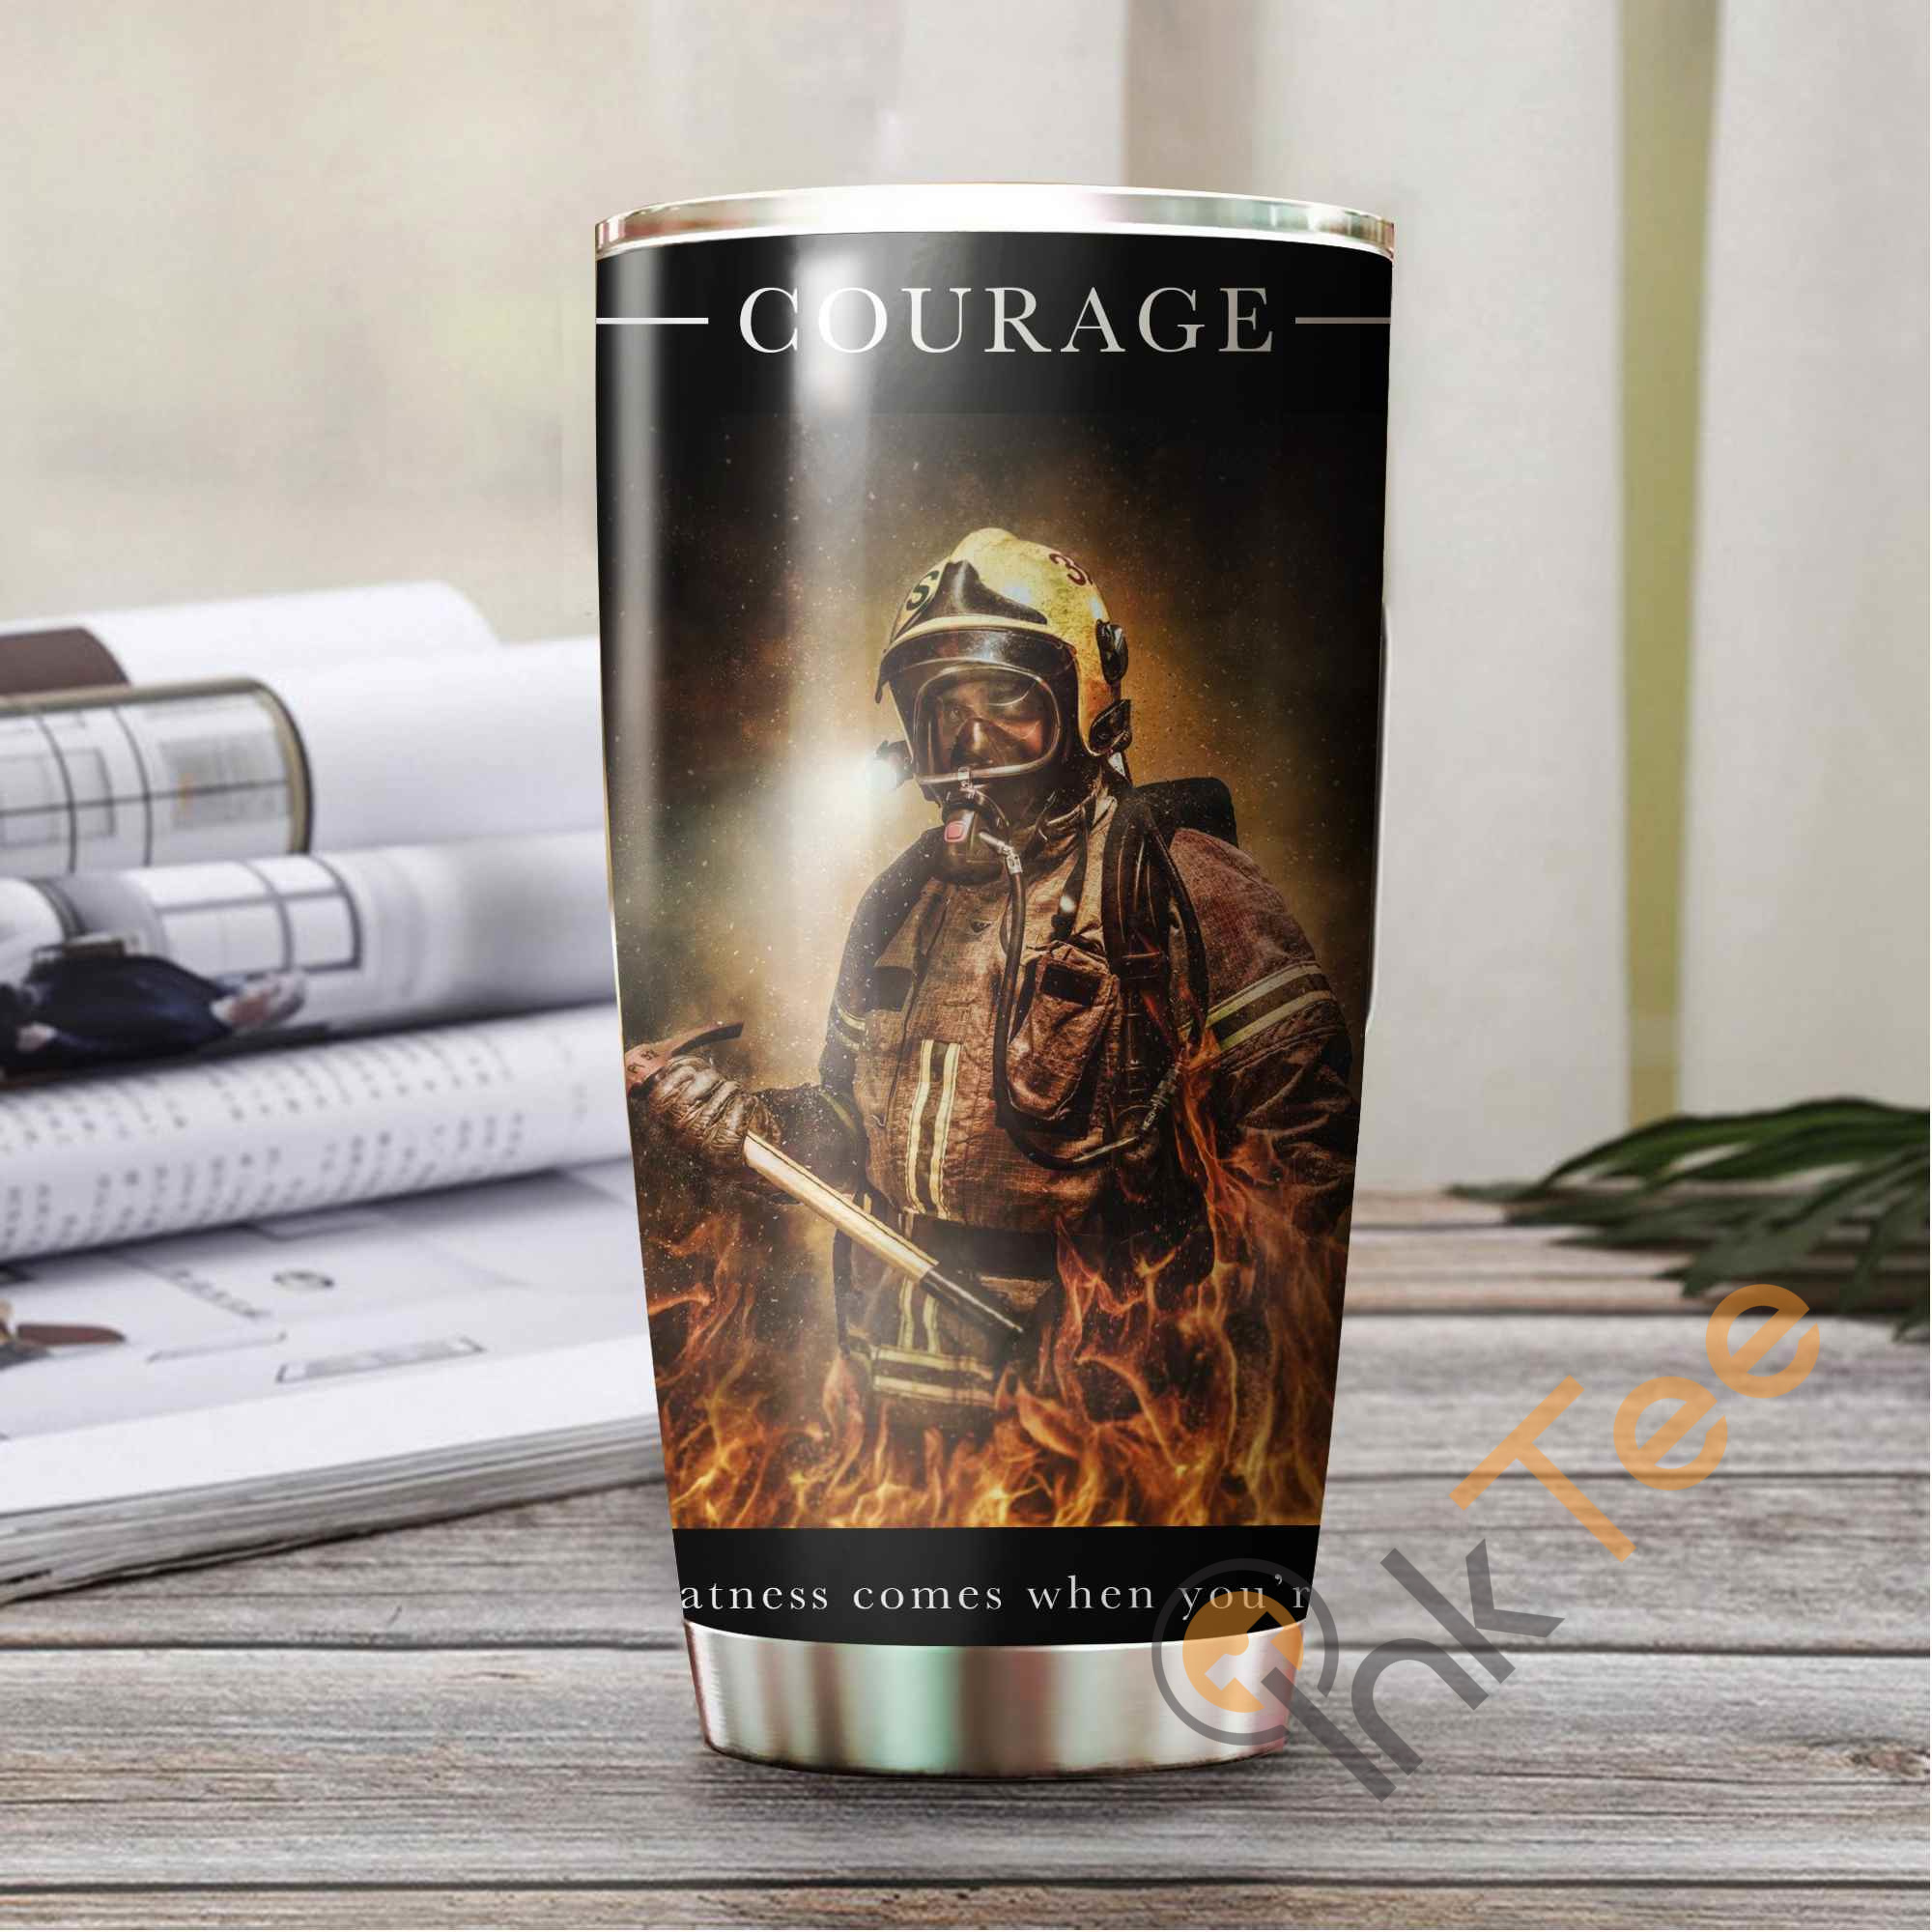 Firefighter's Courage Amazon Best Seller Sku 3028 Stainless Steel Tumbler